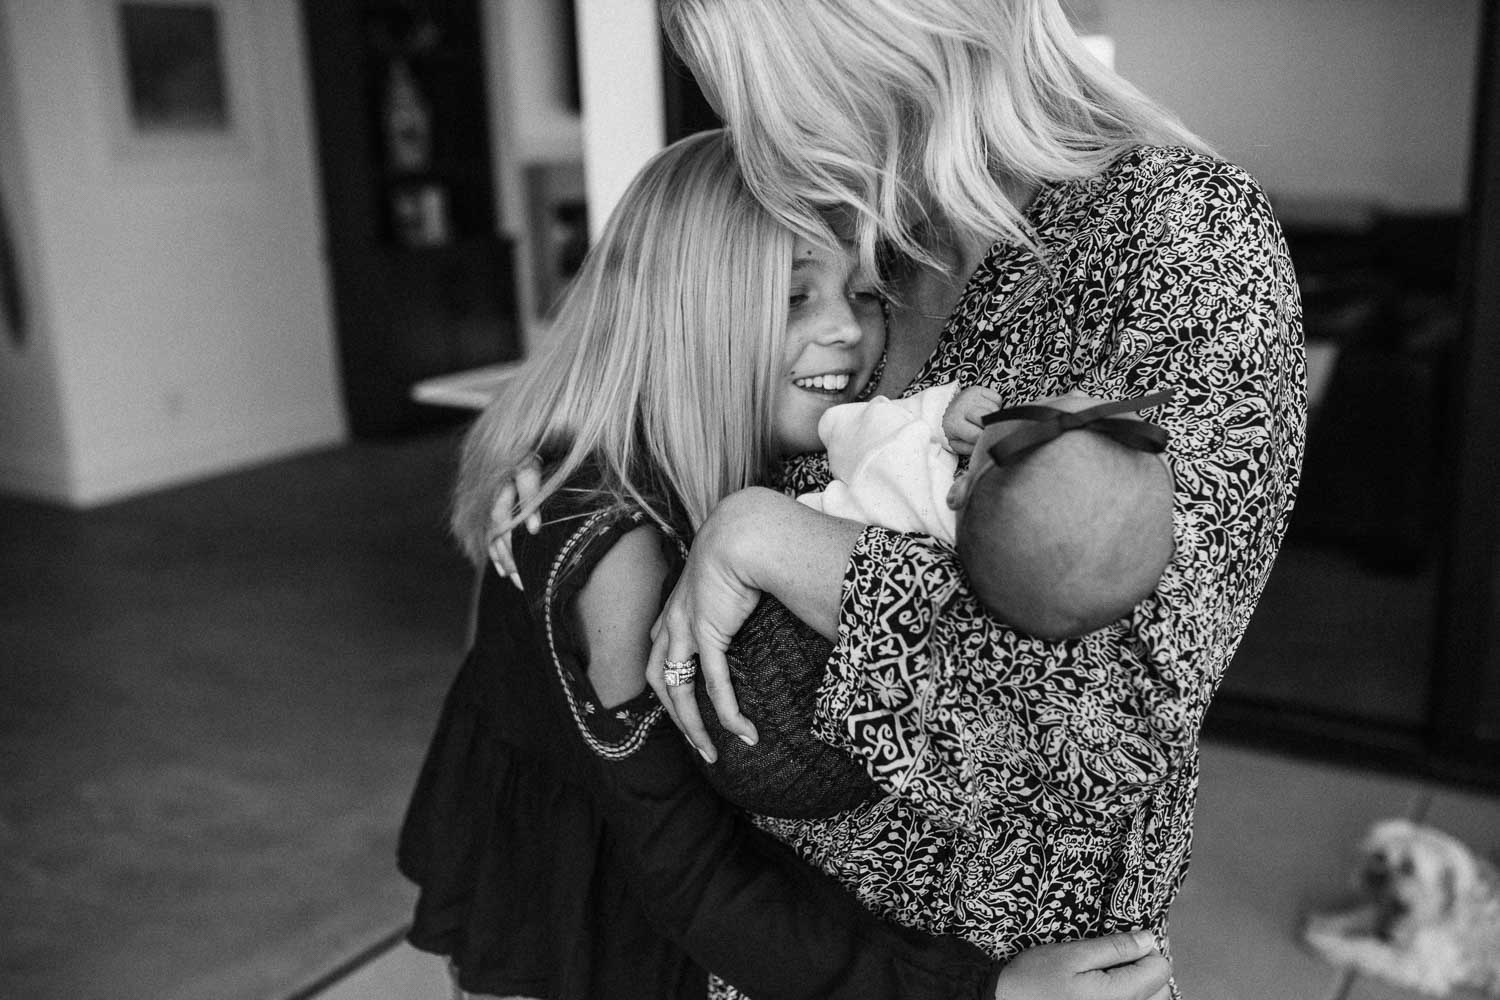 candid-black-and-white-photo-of-mother-hugging-daughters-during-in-home-session-with-jen-fairchild-photography-in-encinitas-california